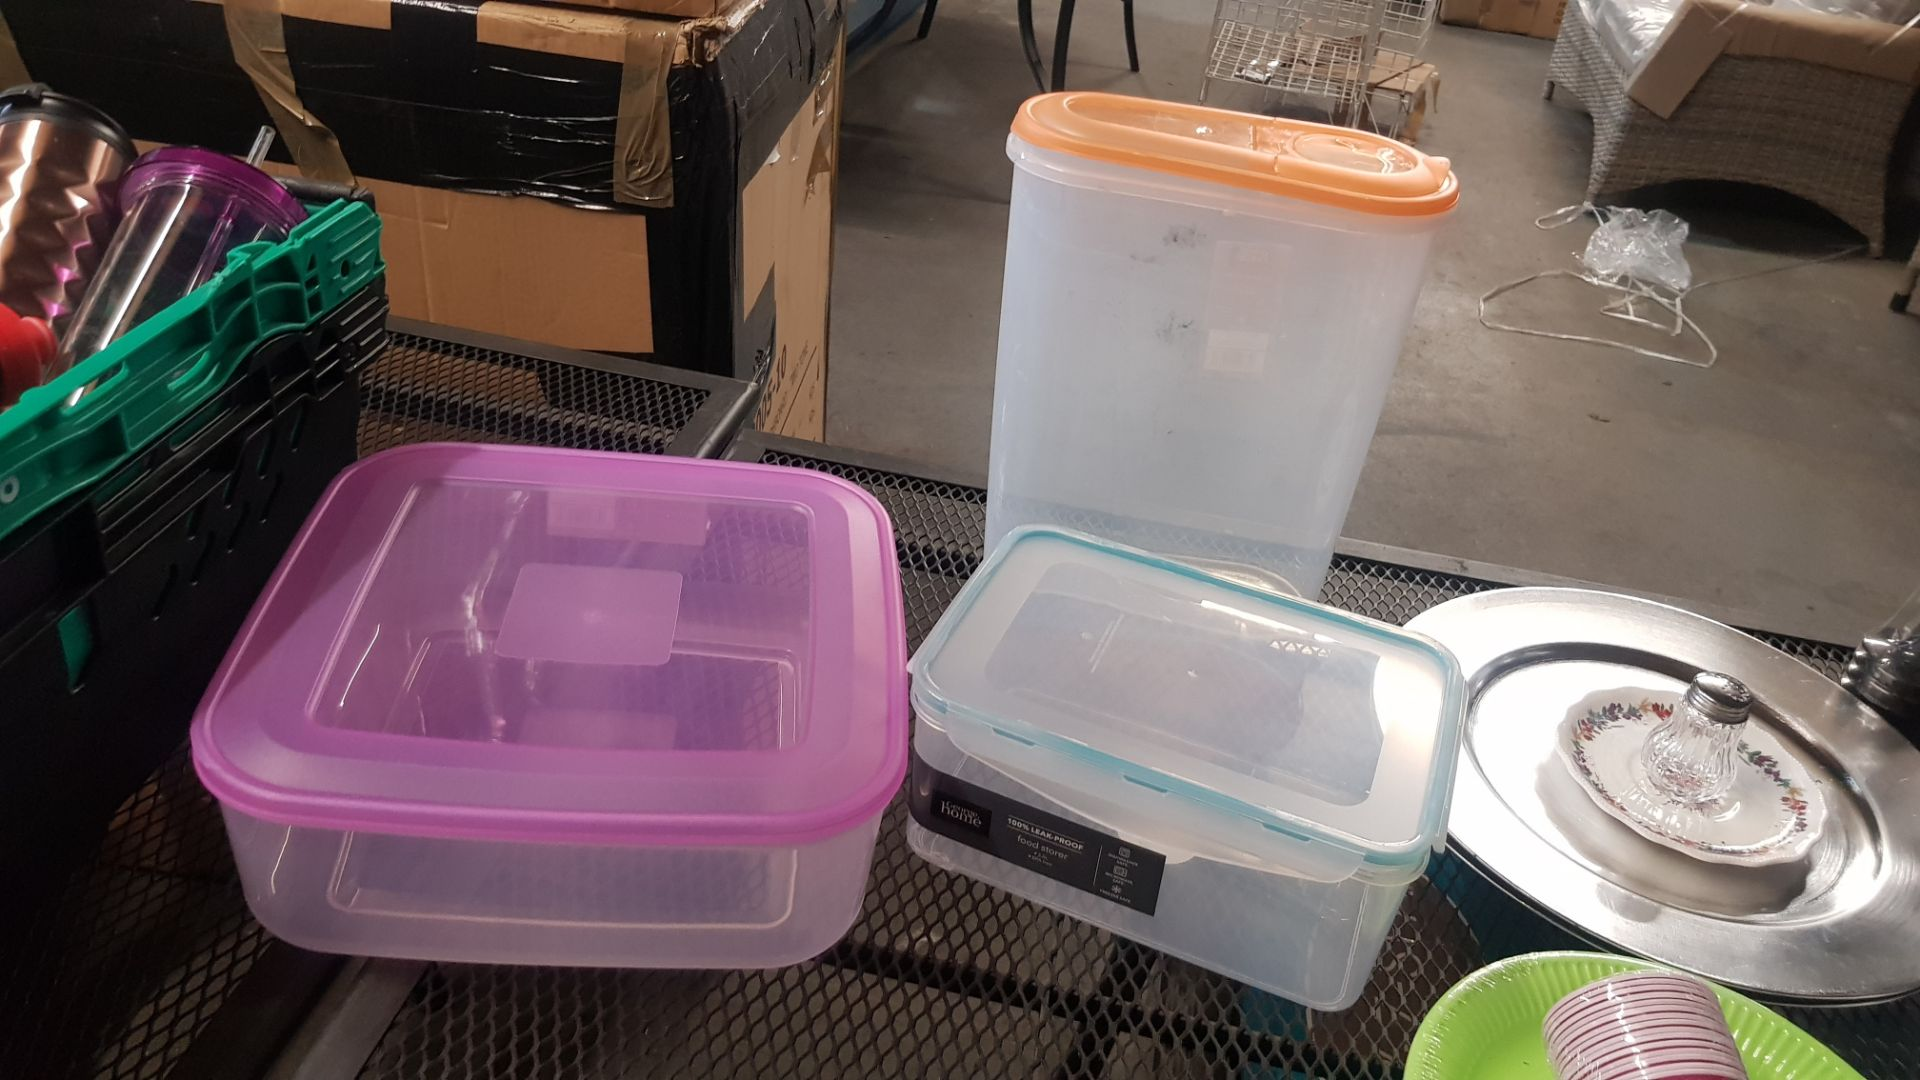 Jobbers Mixed Lot. To Include Plastic & Thermos Drinking Vessels. Plastic Storage Containers. Mixed - Image 5 of 21